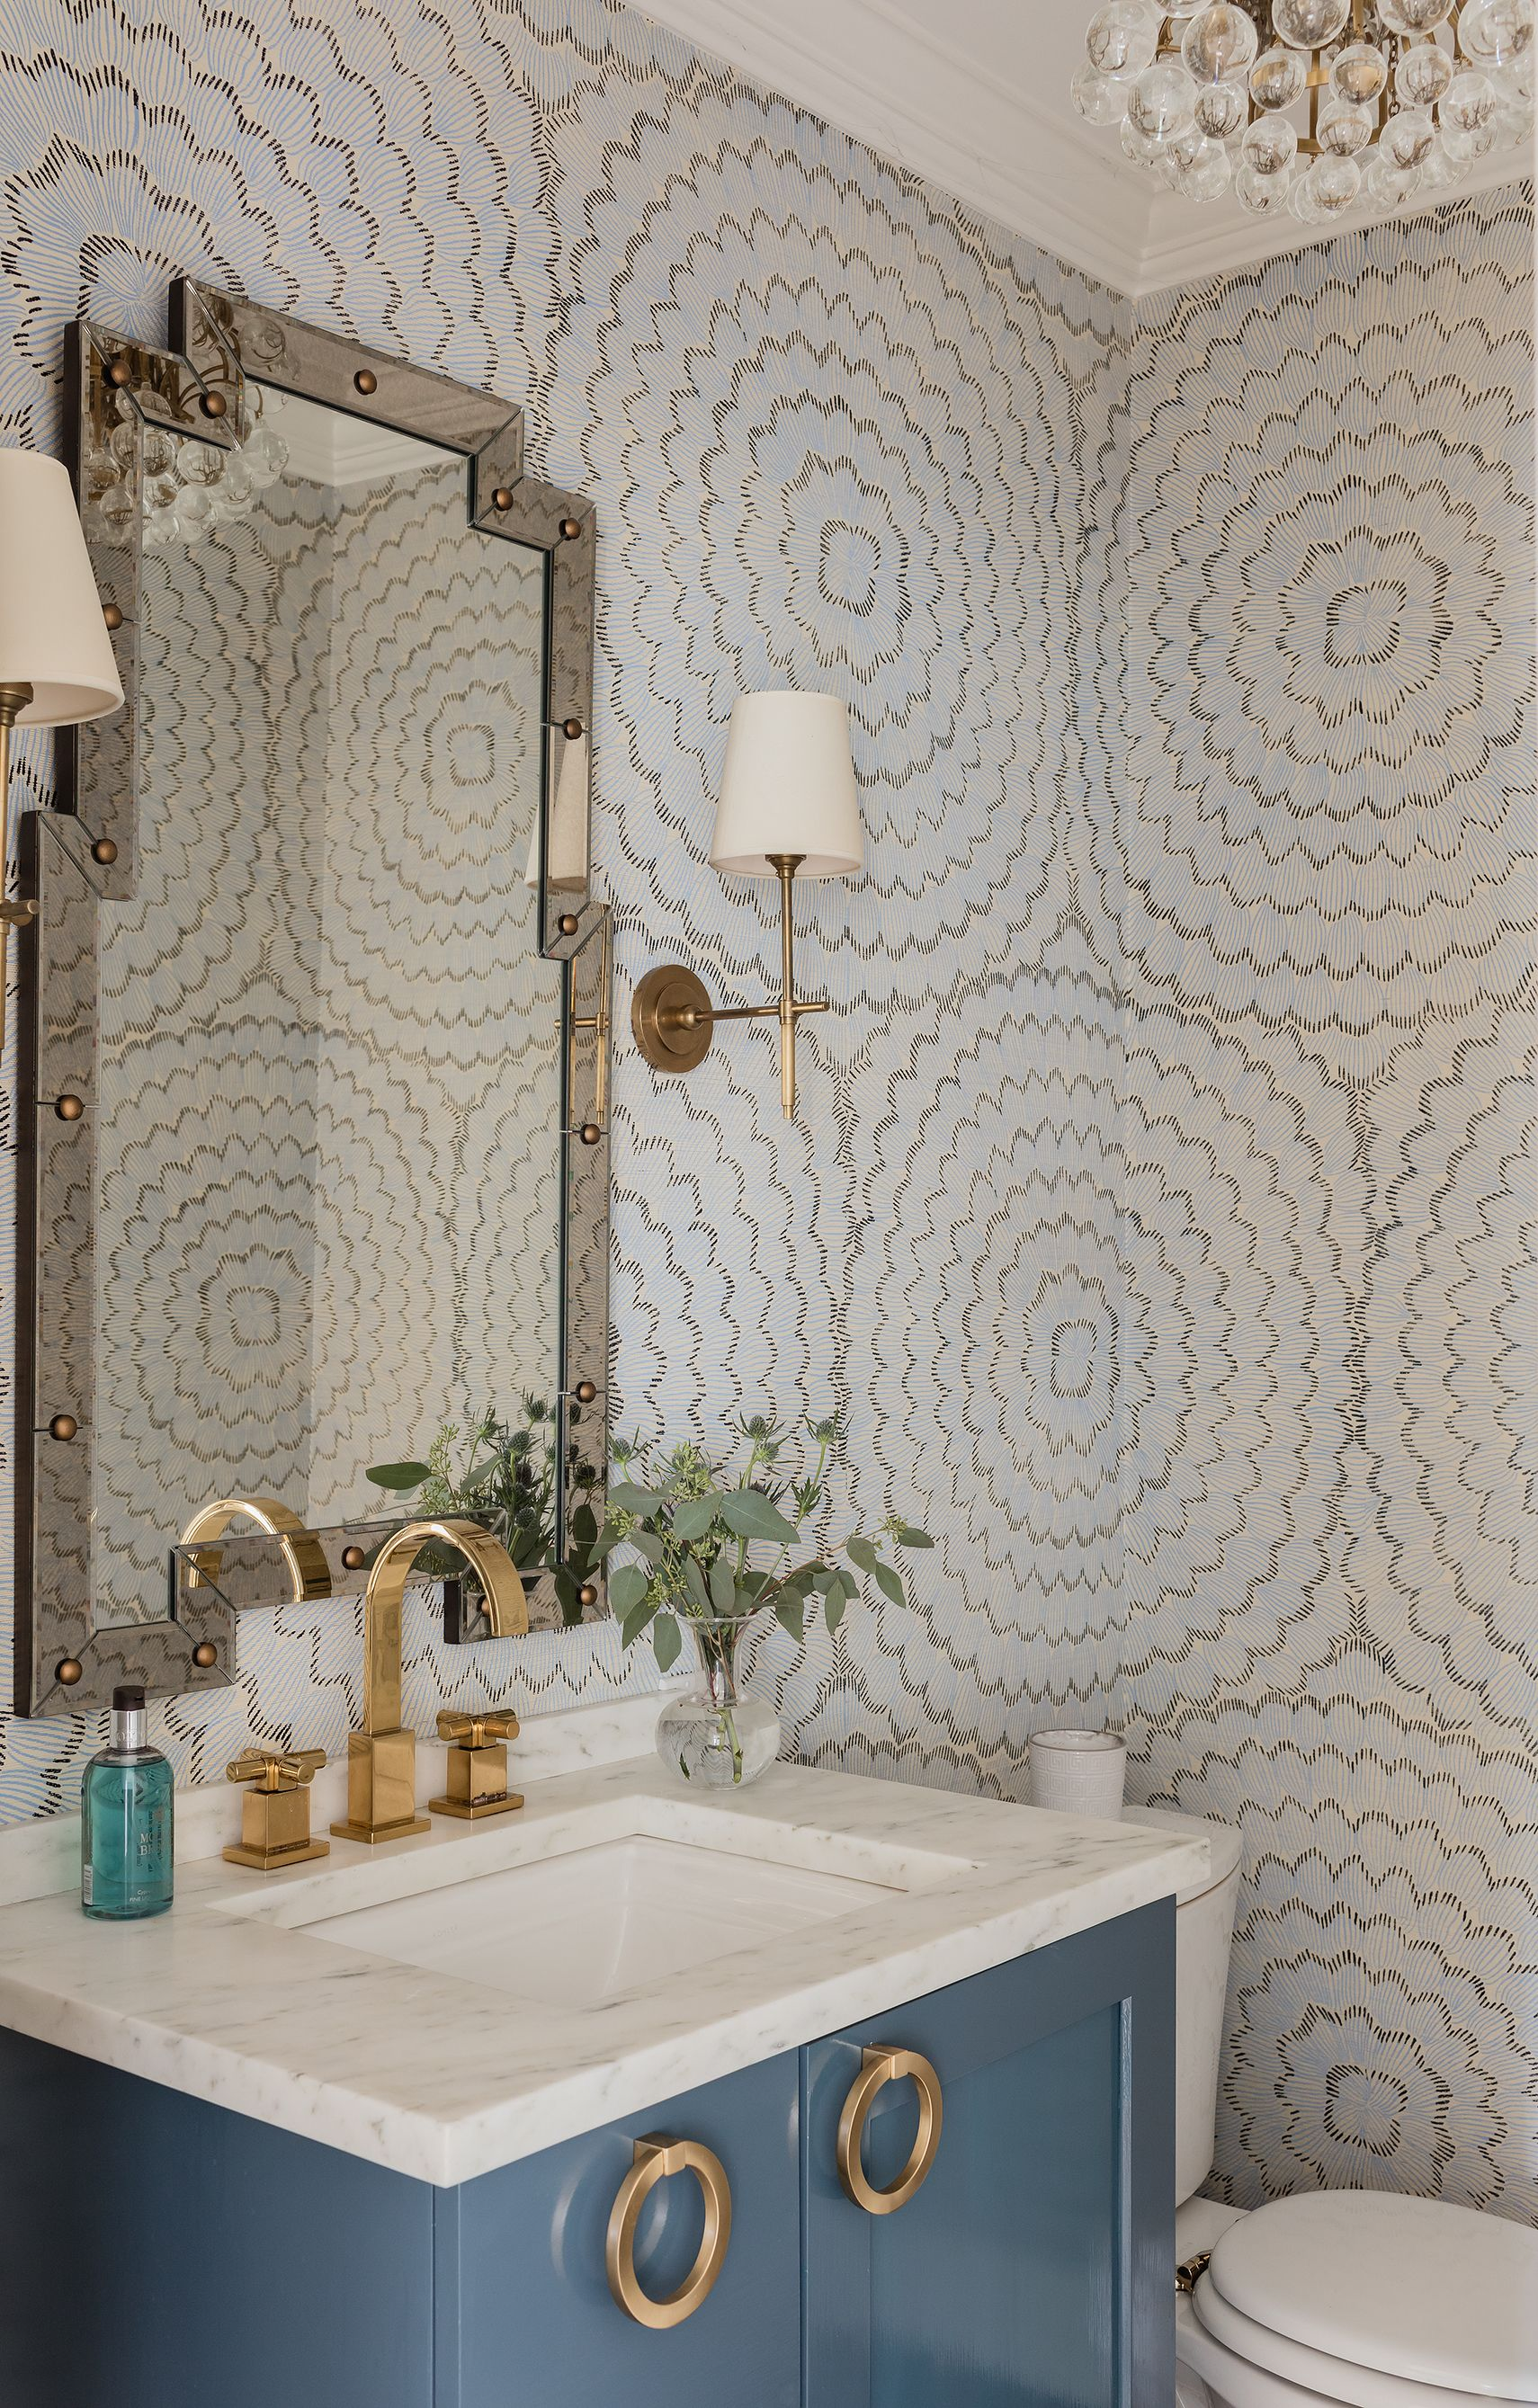 High Vs Low Powder Room Design Powder Room Design Powder Room